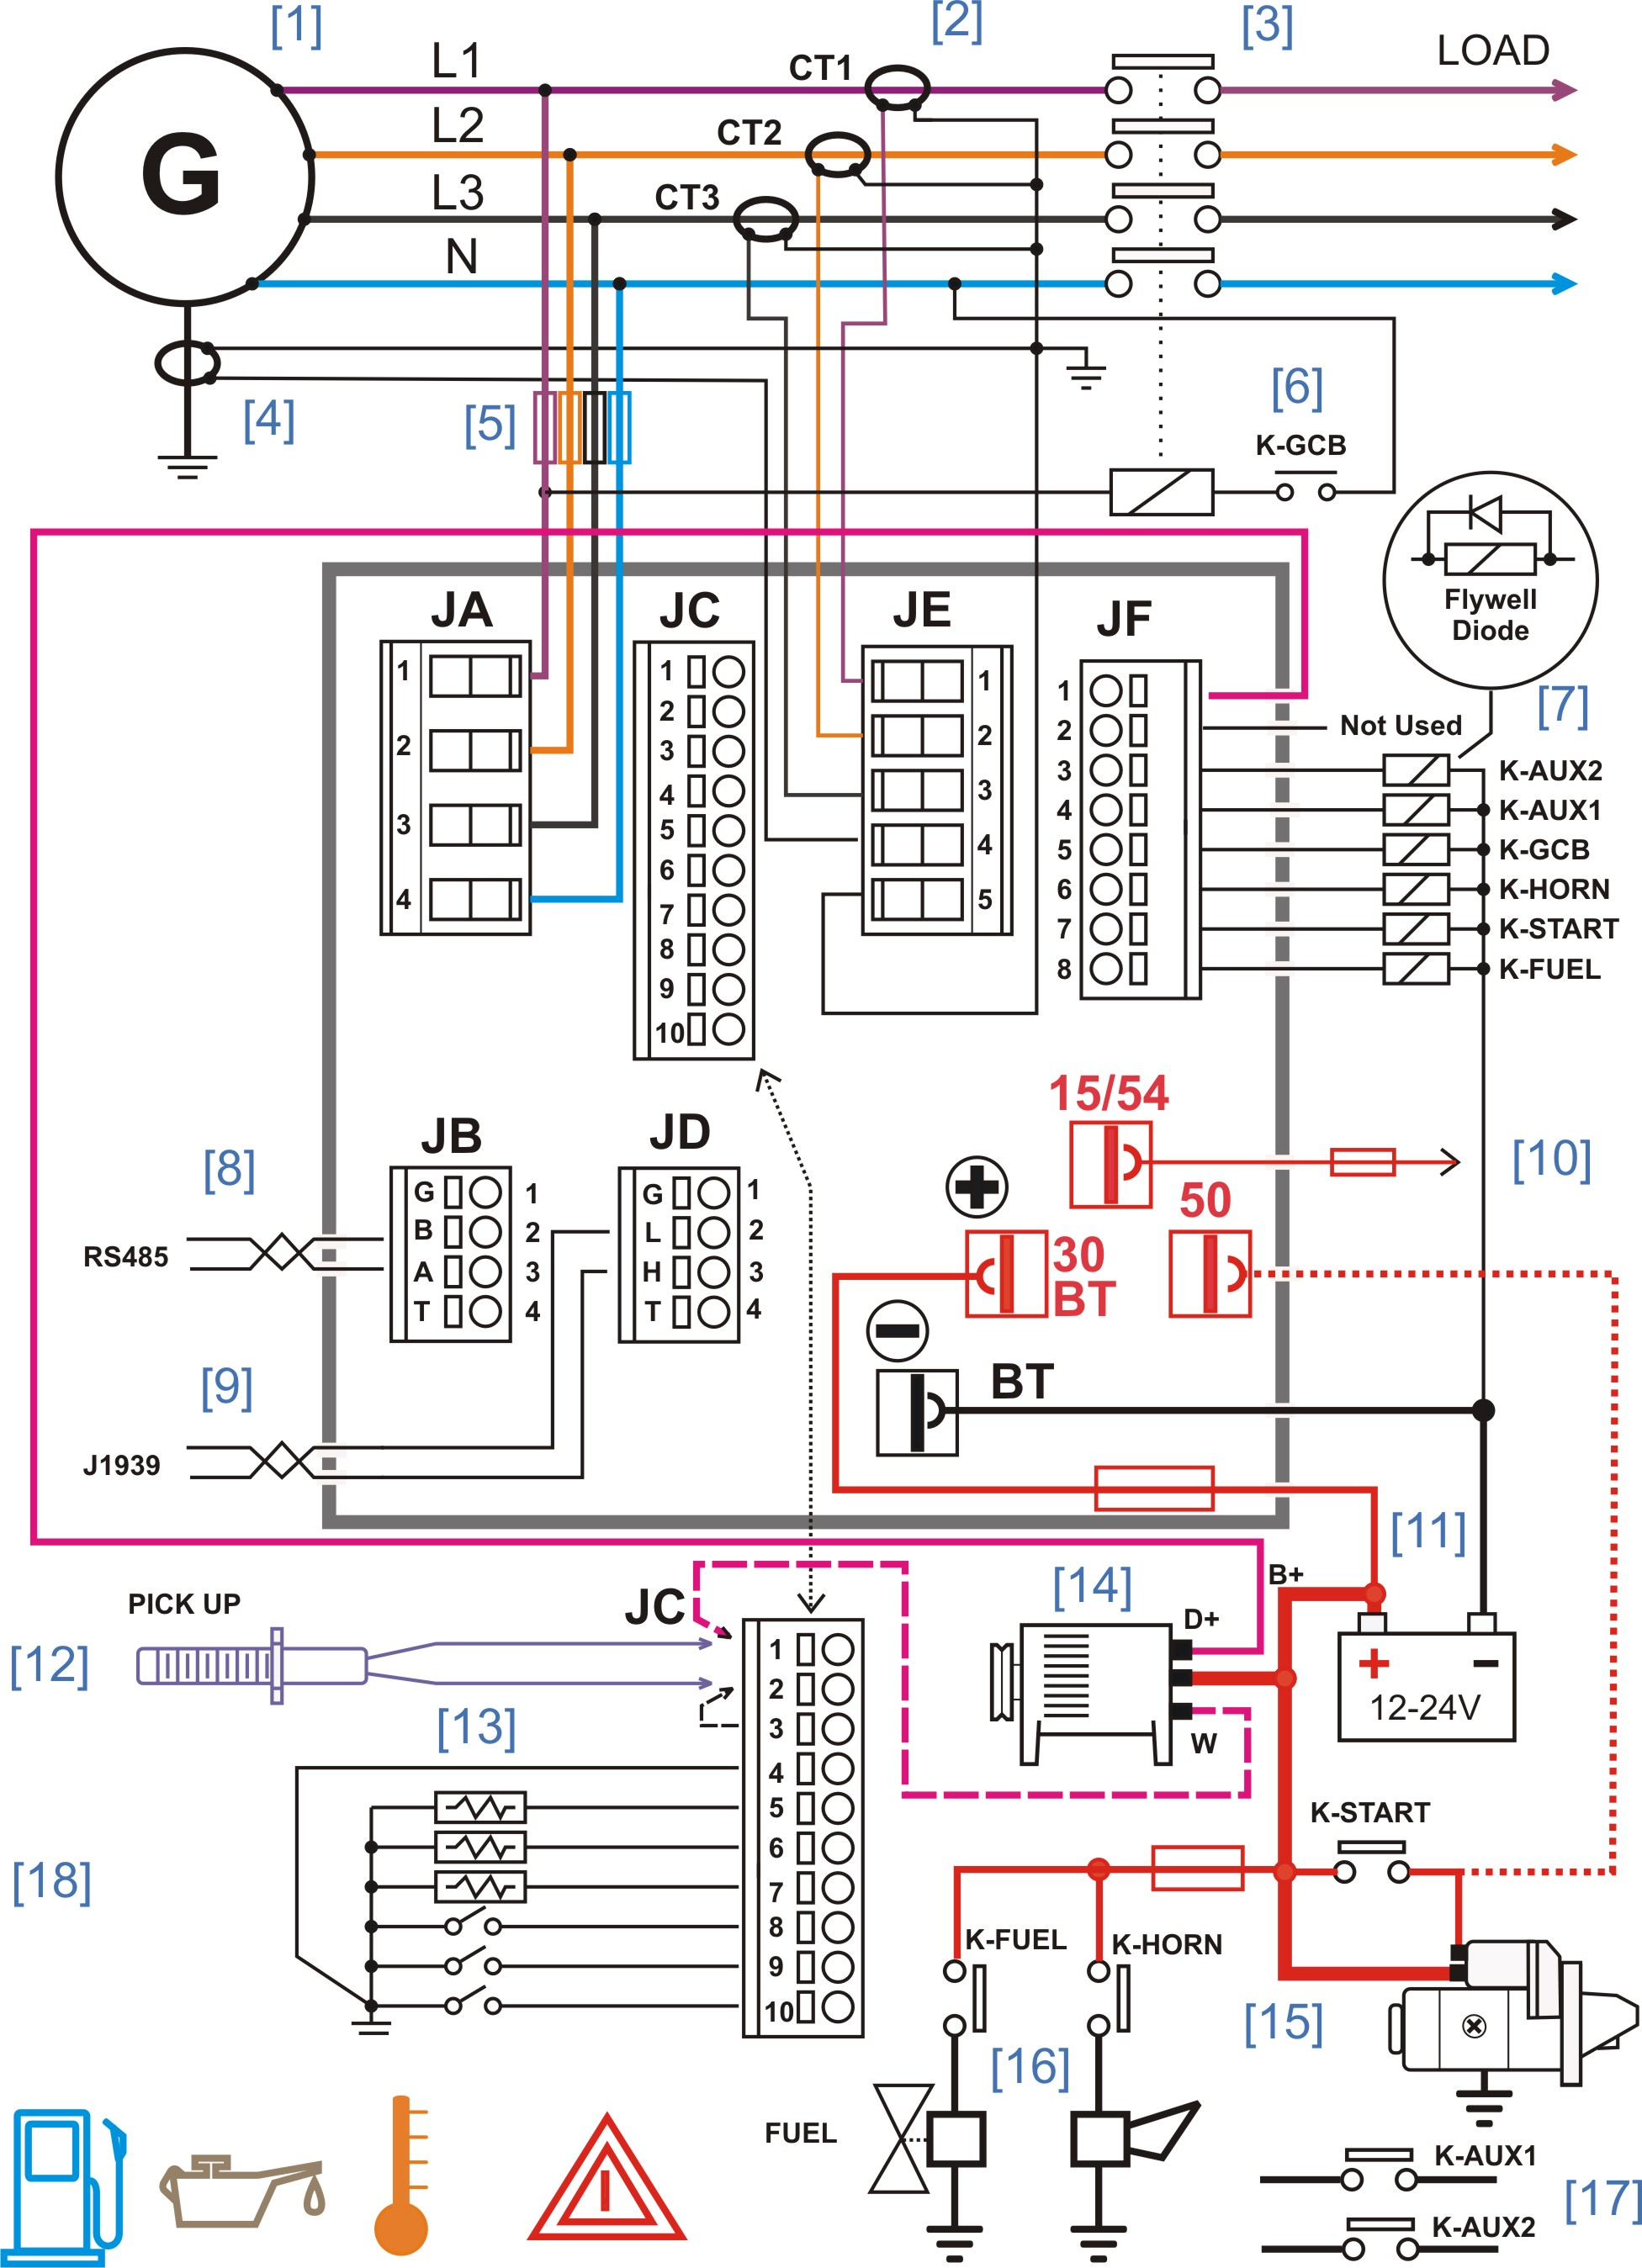 cat5 punch block wiring diagram get free image about wiring diagram rh melo westkentbuses co uk